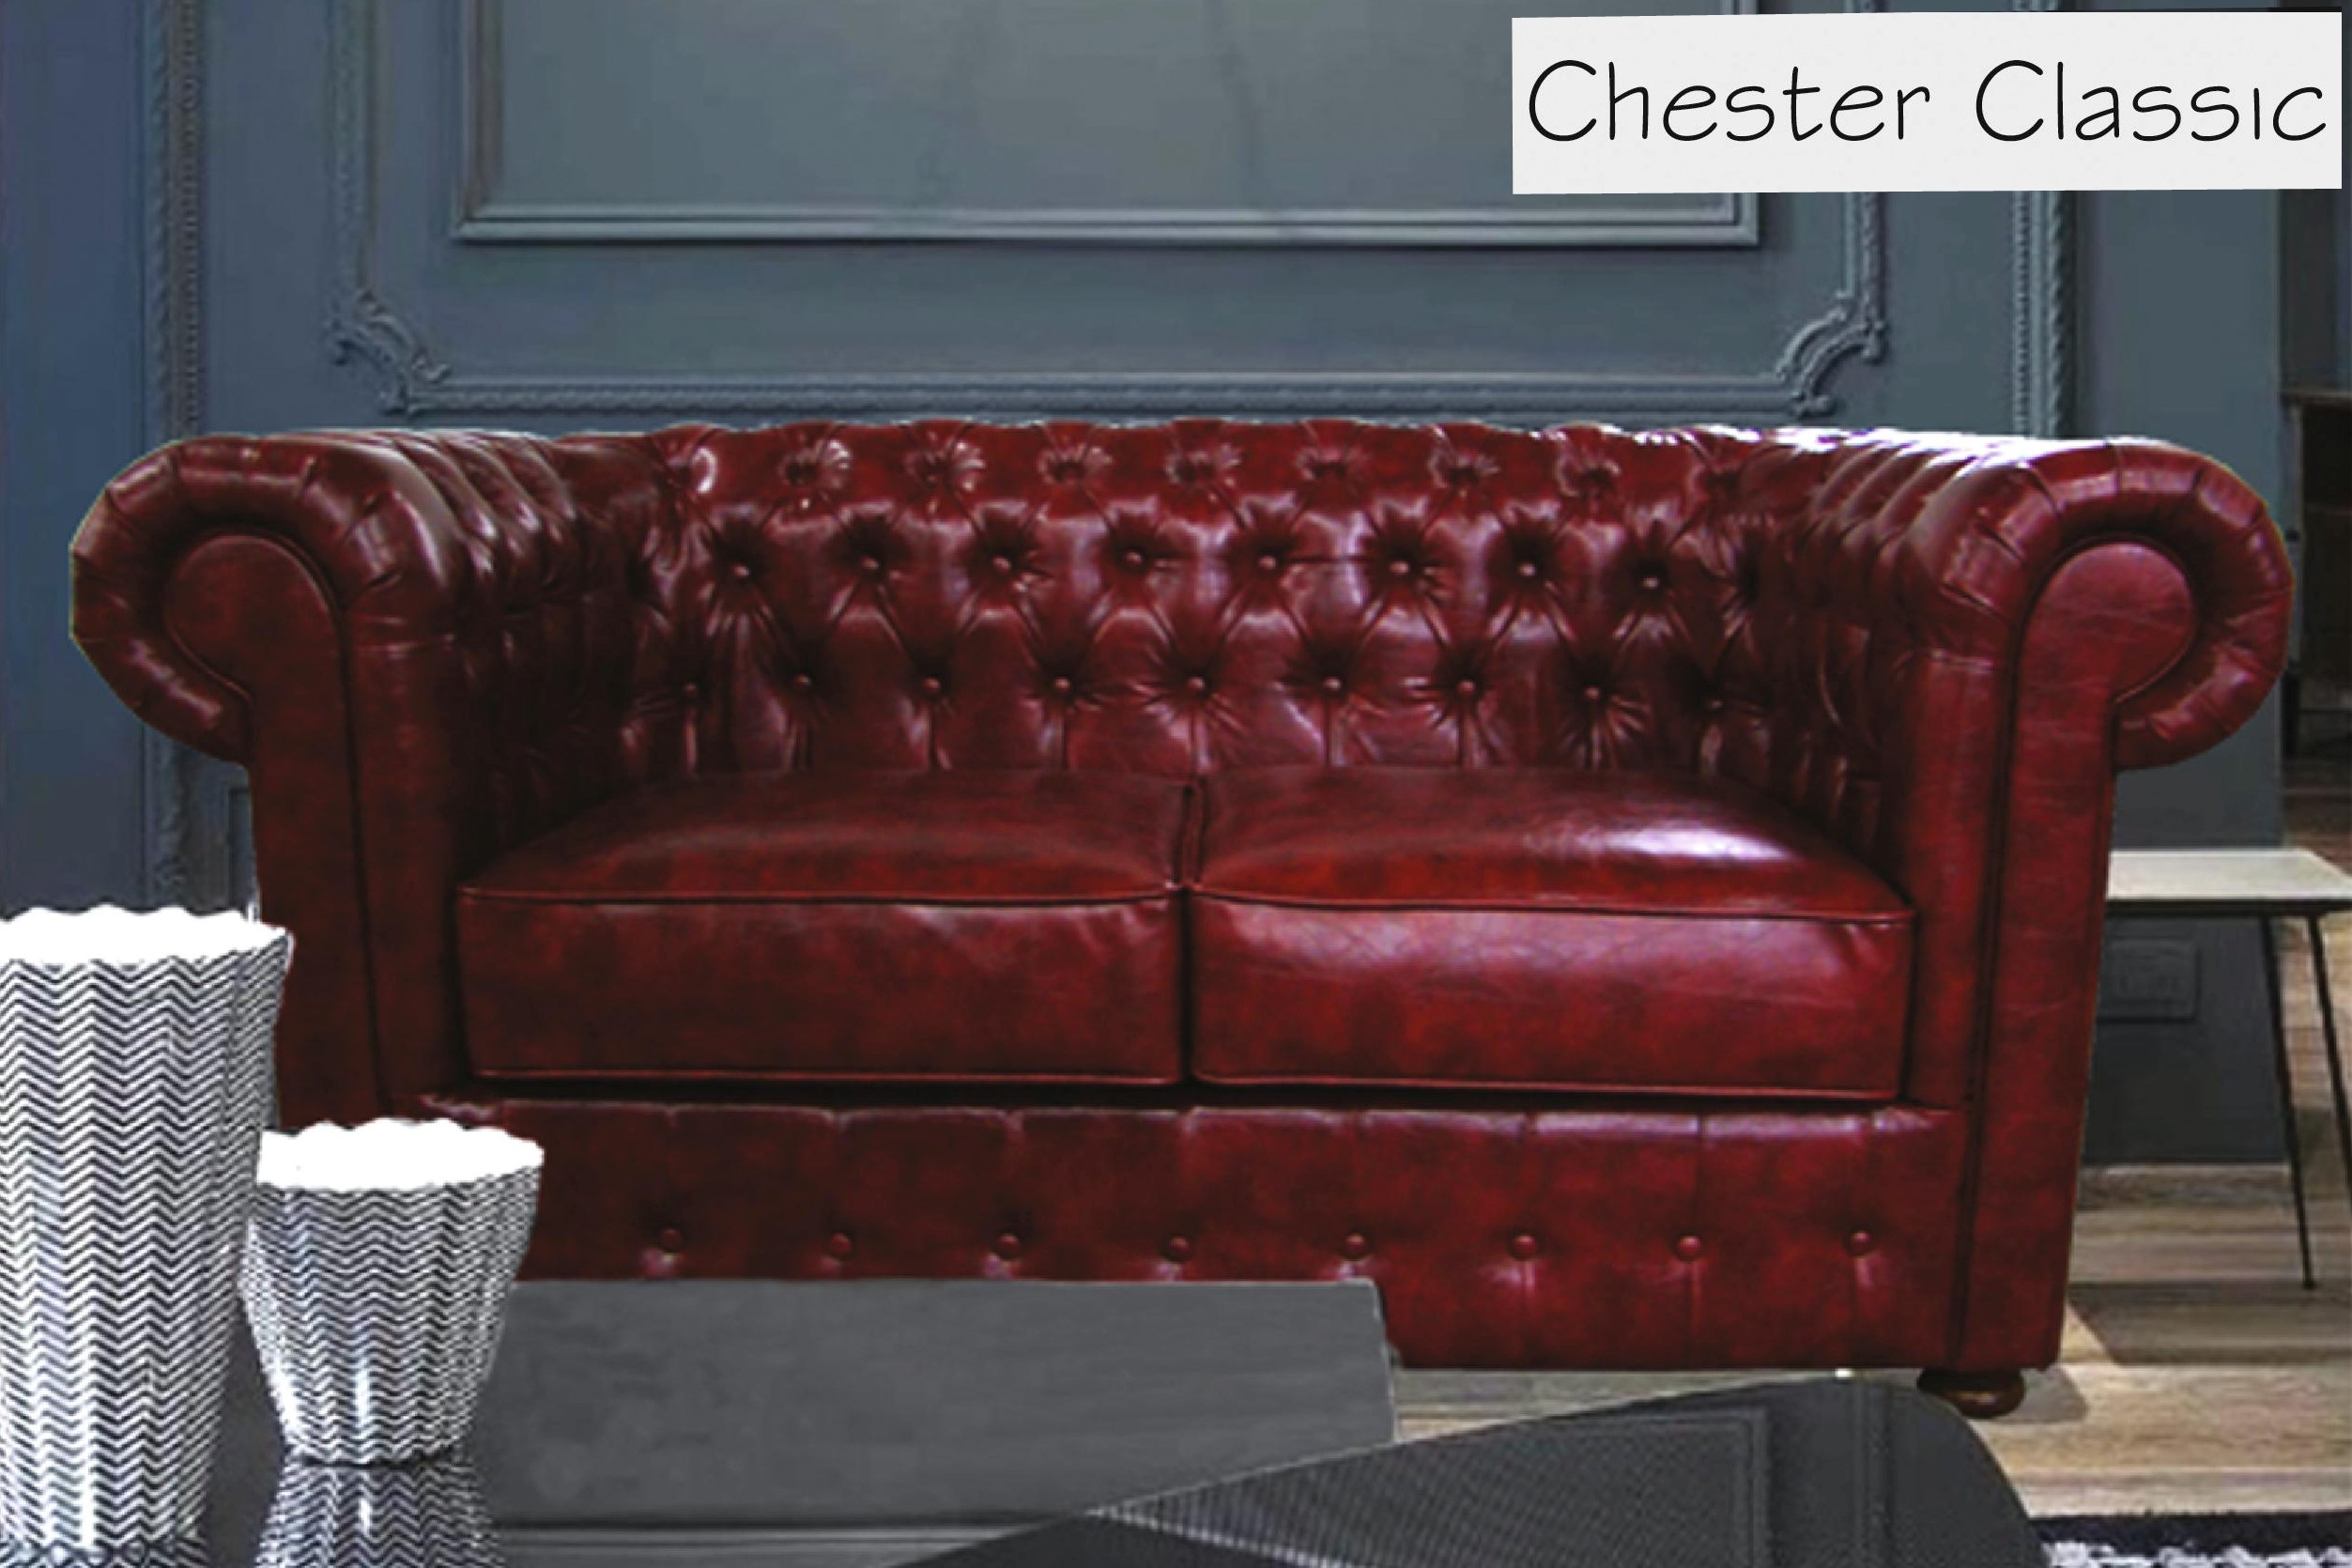 Chester Classic